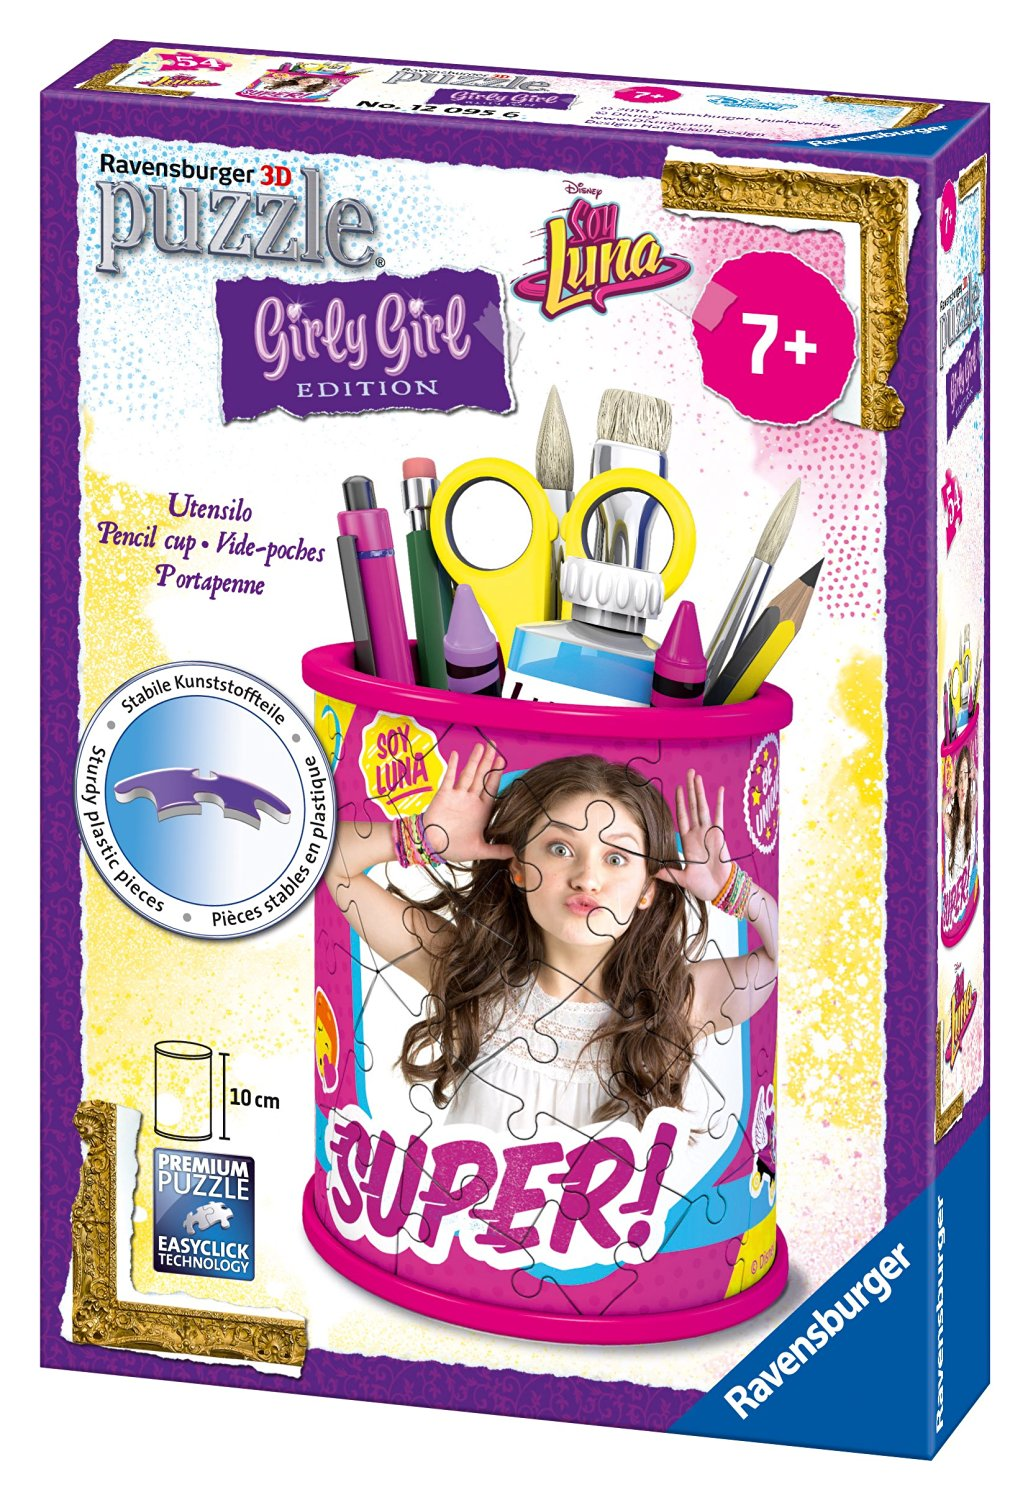 3D Puzzle - Girly Girls Edition - Utensilo Soy Luna - 54 Teile ...